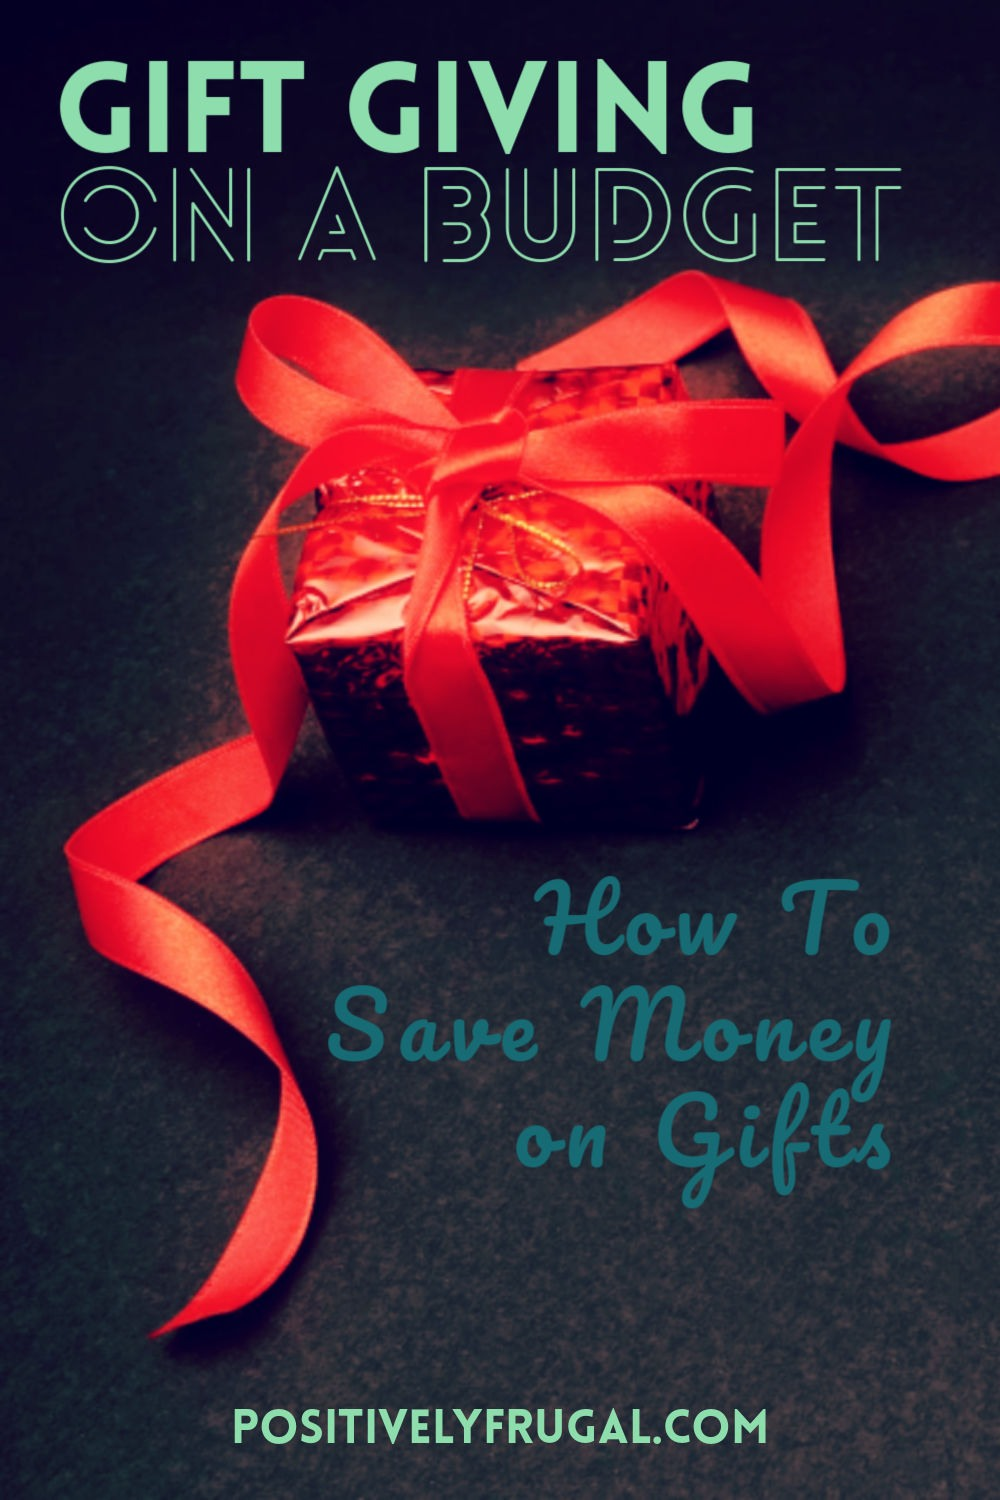 Gift Giving on a Budget by PositivelyFrugal.com